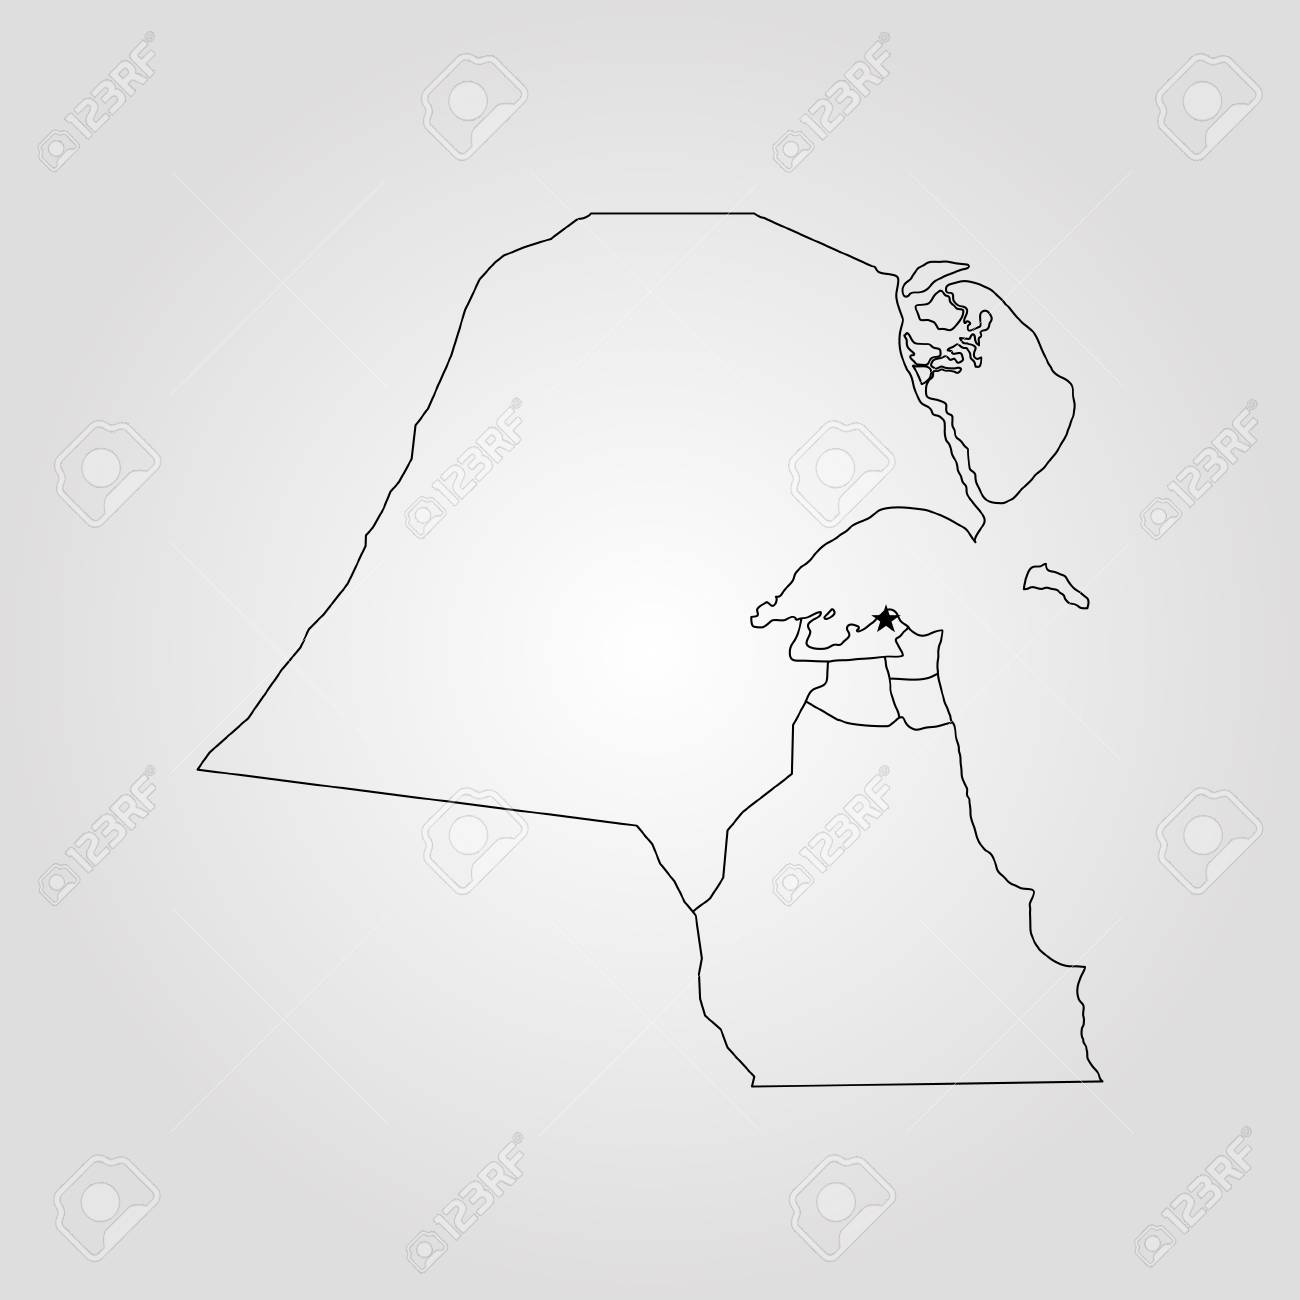 Map Of Kuwait. Vector Illustration. World Map Royalty Free Cliparts ...